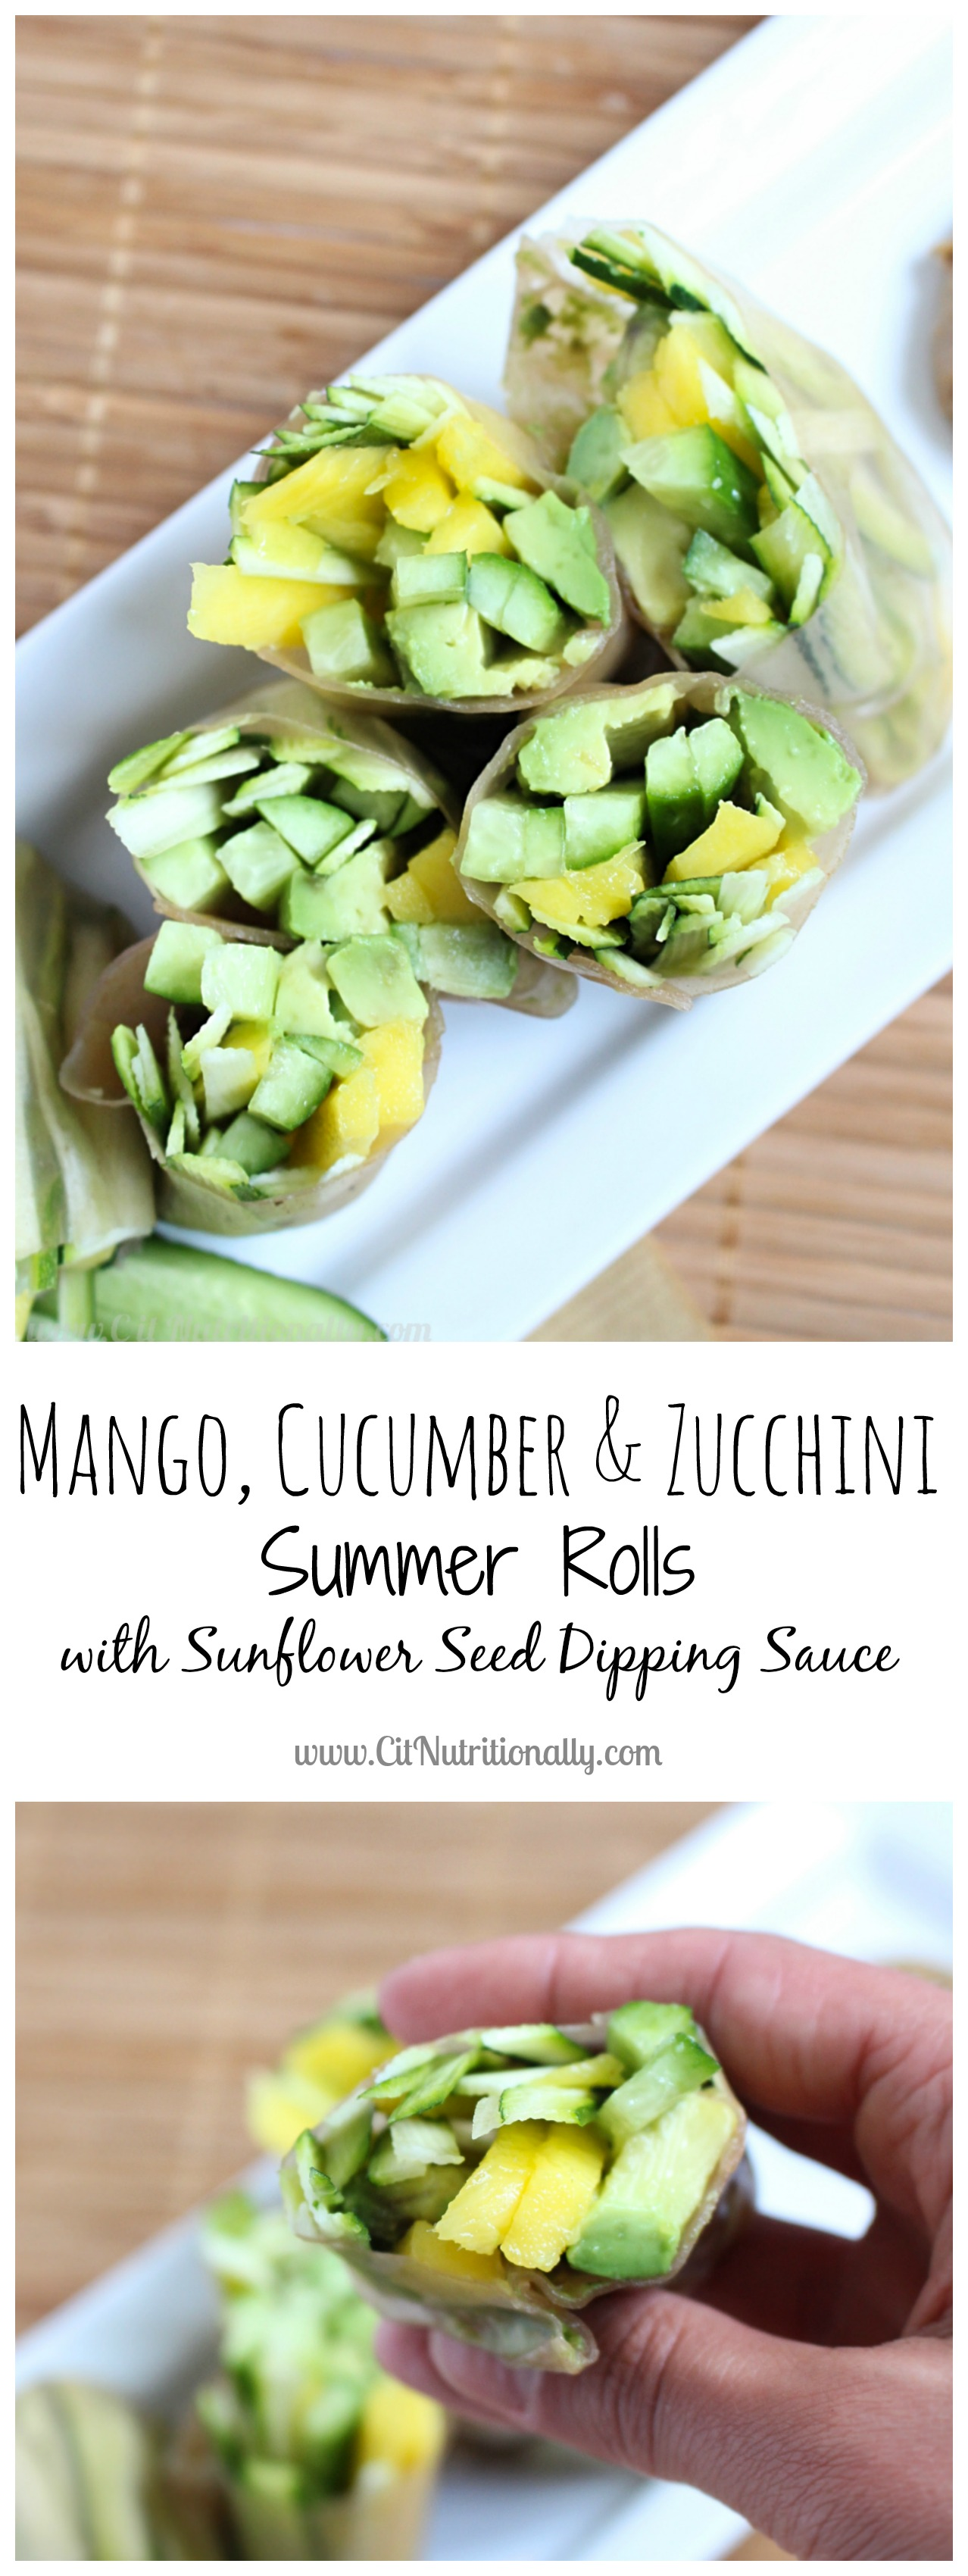 Mango, Cucumber & Zucchini Summer Rolls with Sunflower Seed Dipping Sauce | C it Nutritionally